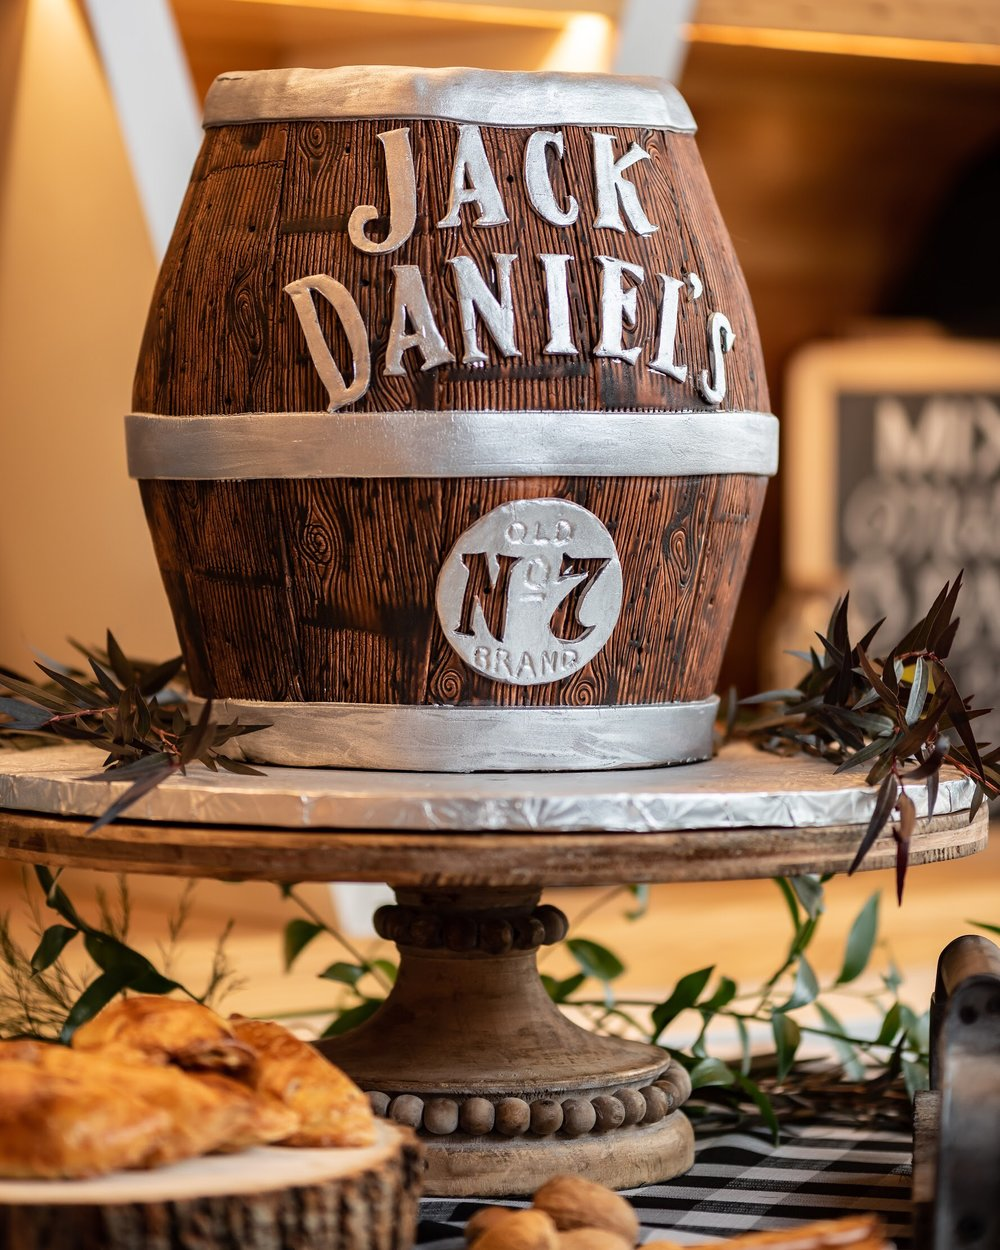 Any man would love this Jack Daniel's barrel shaped cake!